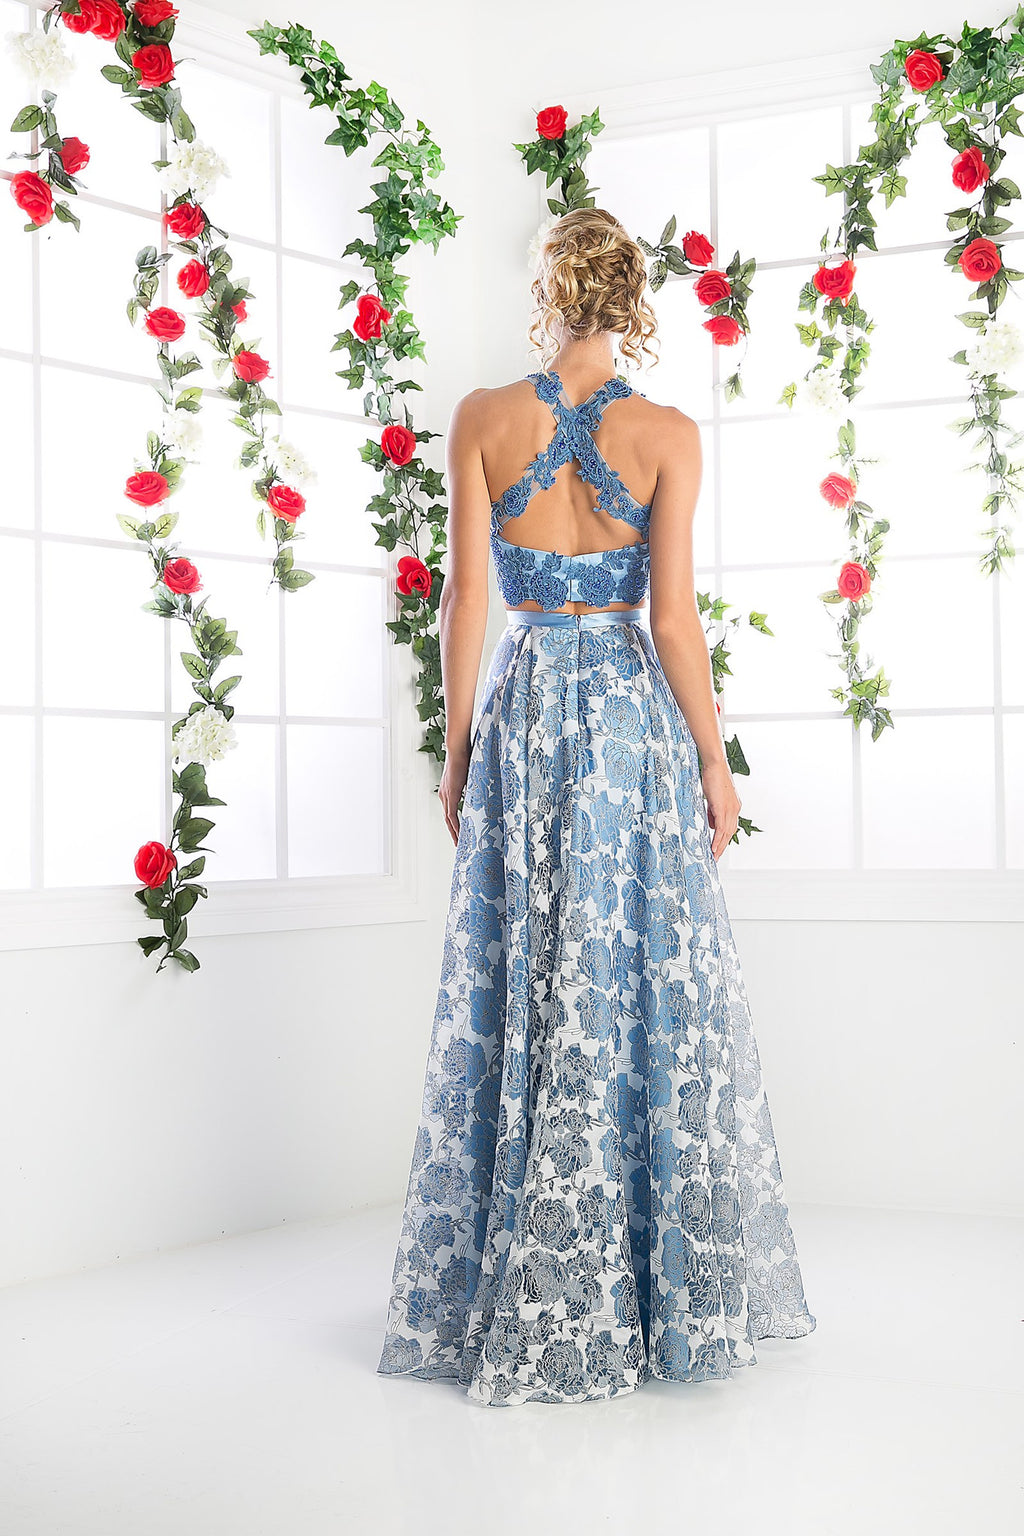 LONG TWO PIECE DRESS WITH LACE AND FLOWING CHIFFON STYLE #CNDKD099 - NORMA REED - 1